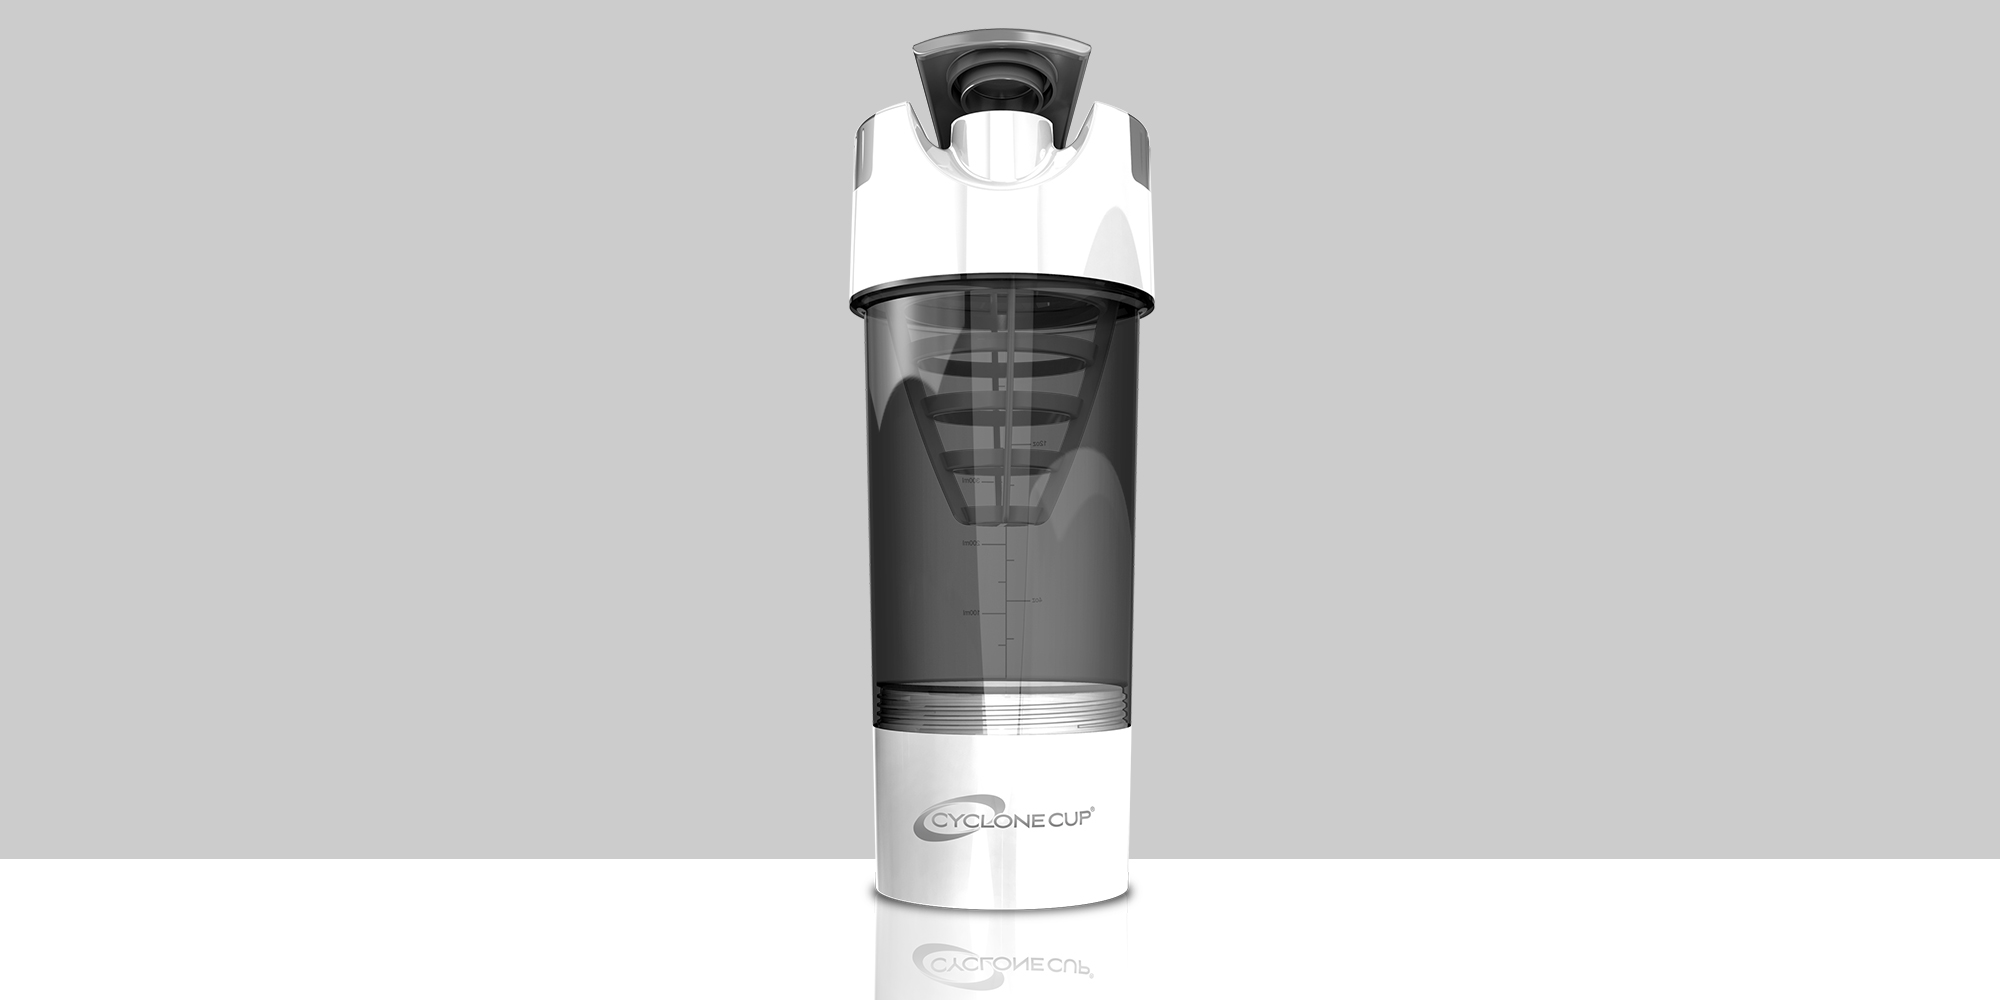 10 Best Protein Shaker Bottles 2016 - Shaker Cups and ...